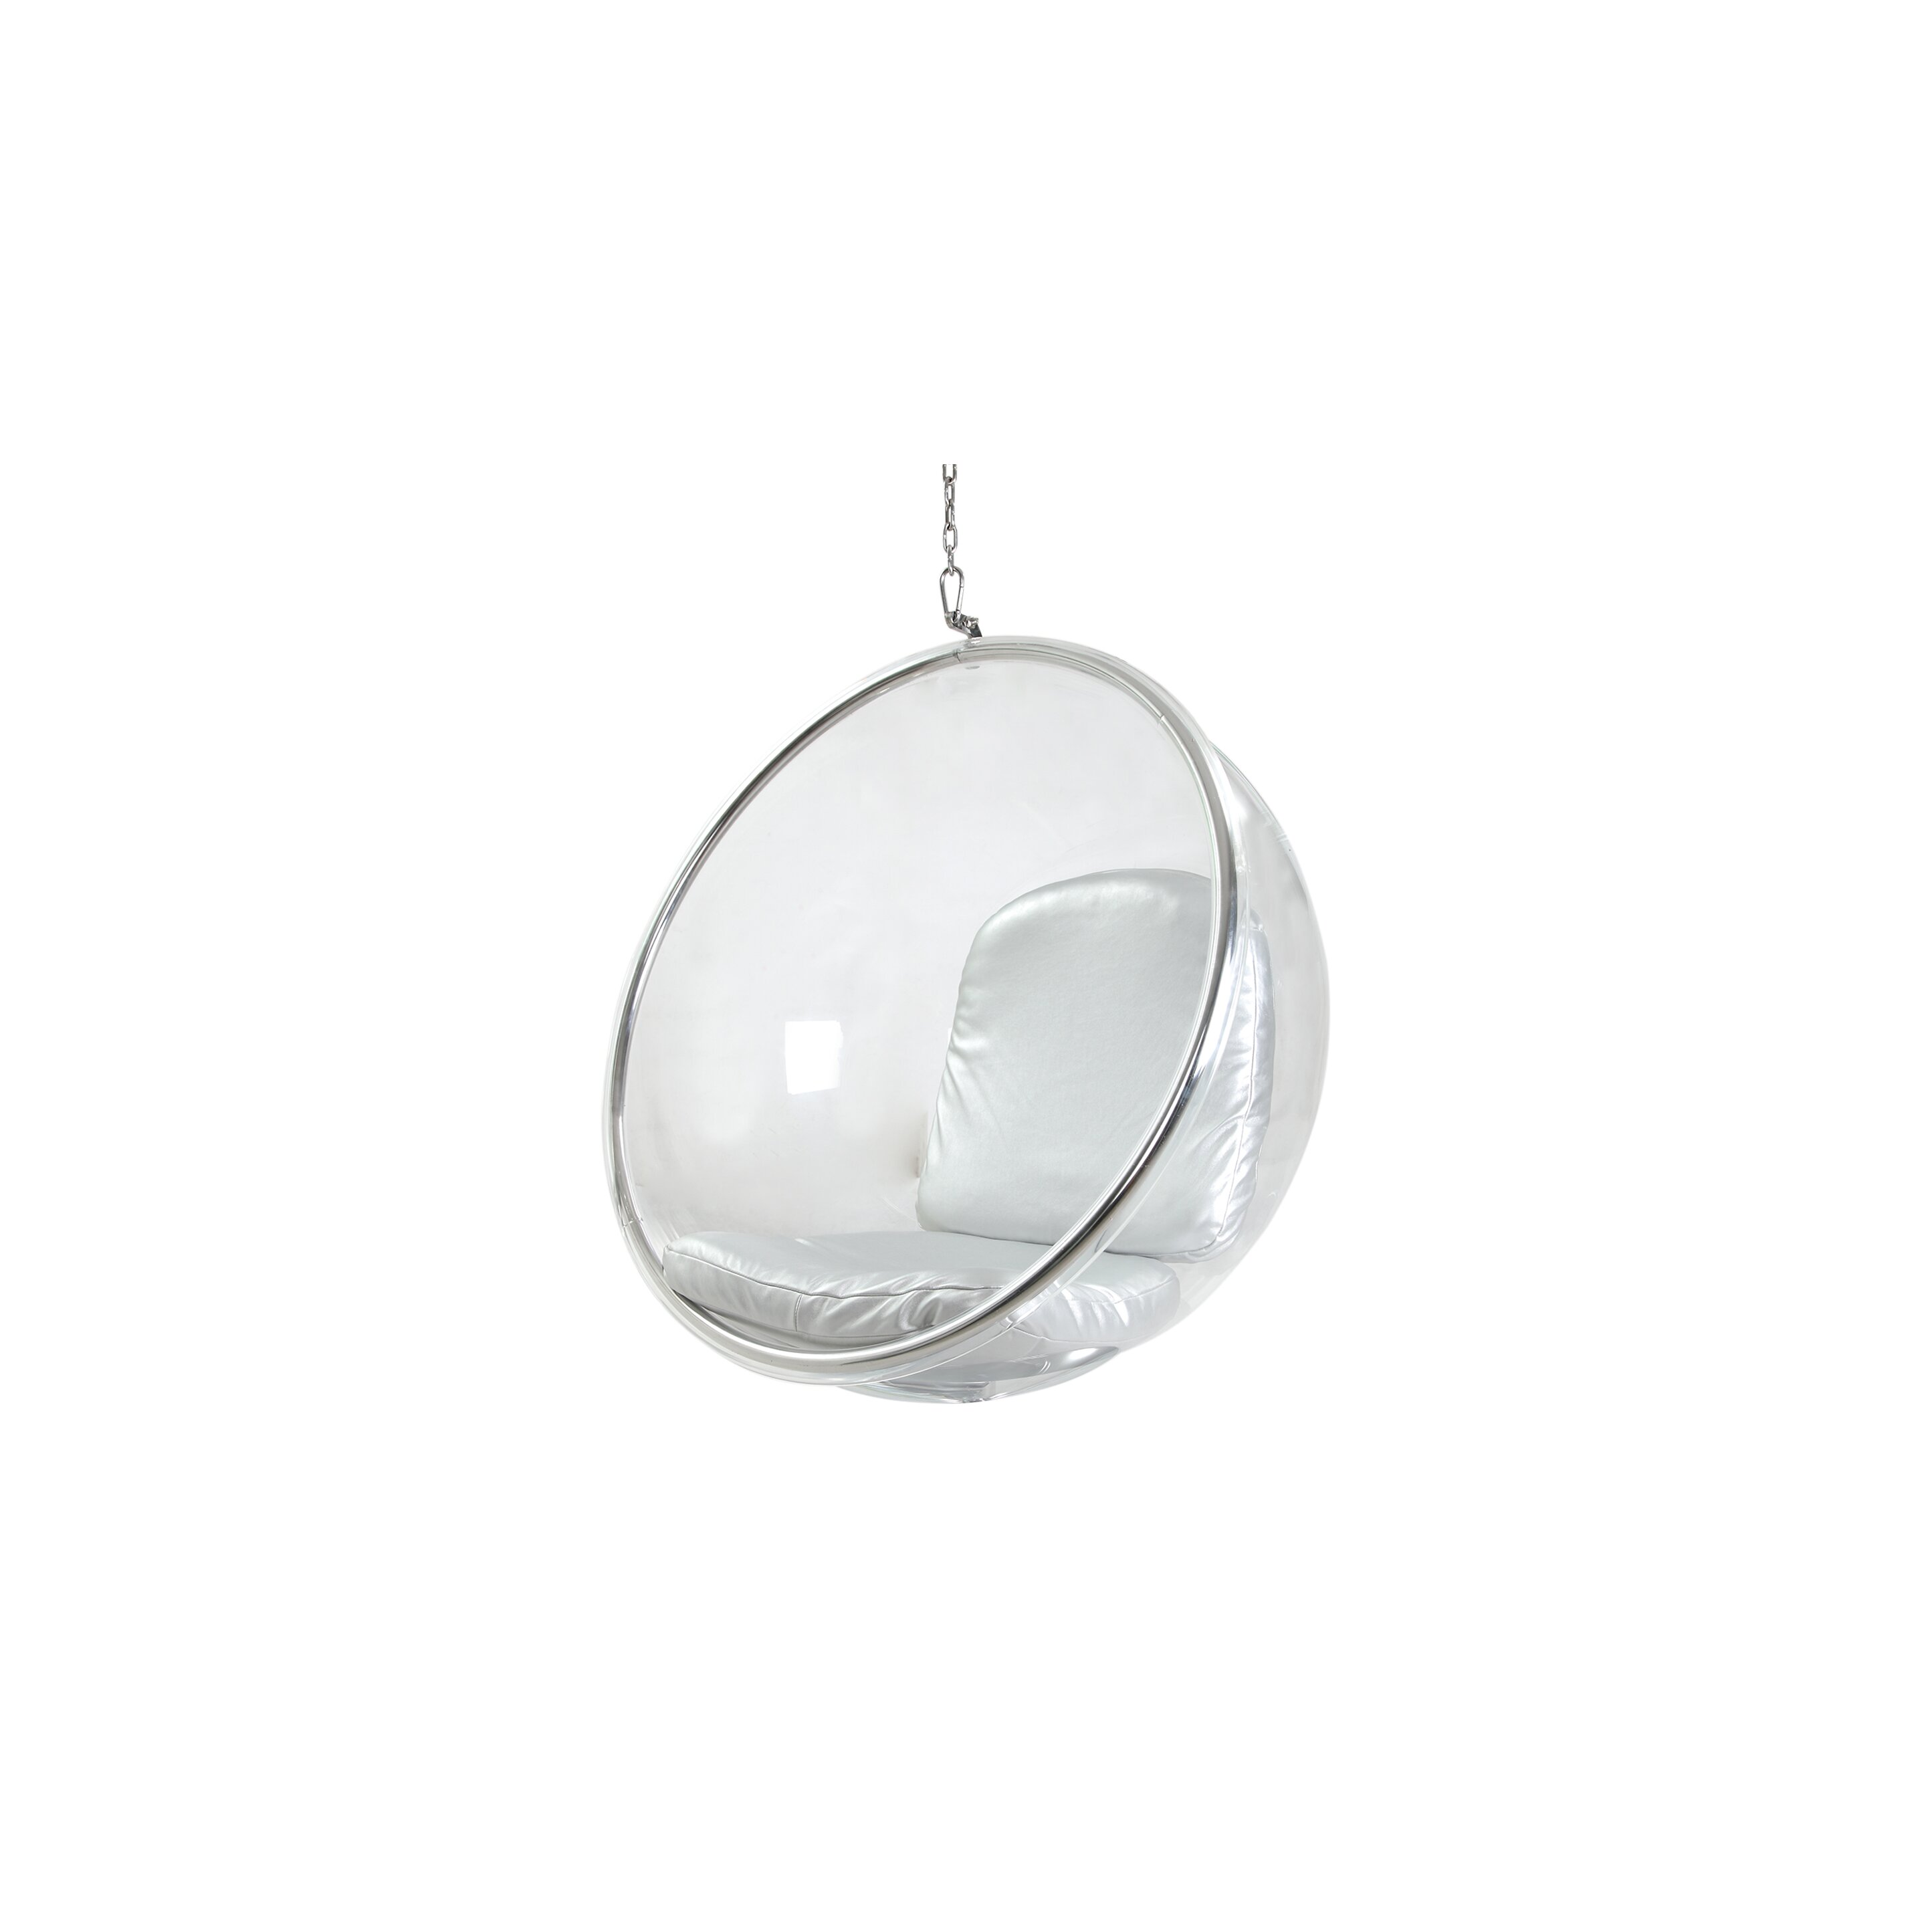 Bubble chair dimensions - Eero Aarnio Bubble Chair Review Kardiel Bubble Style Hanging Ceiling Balloon Chair